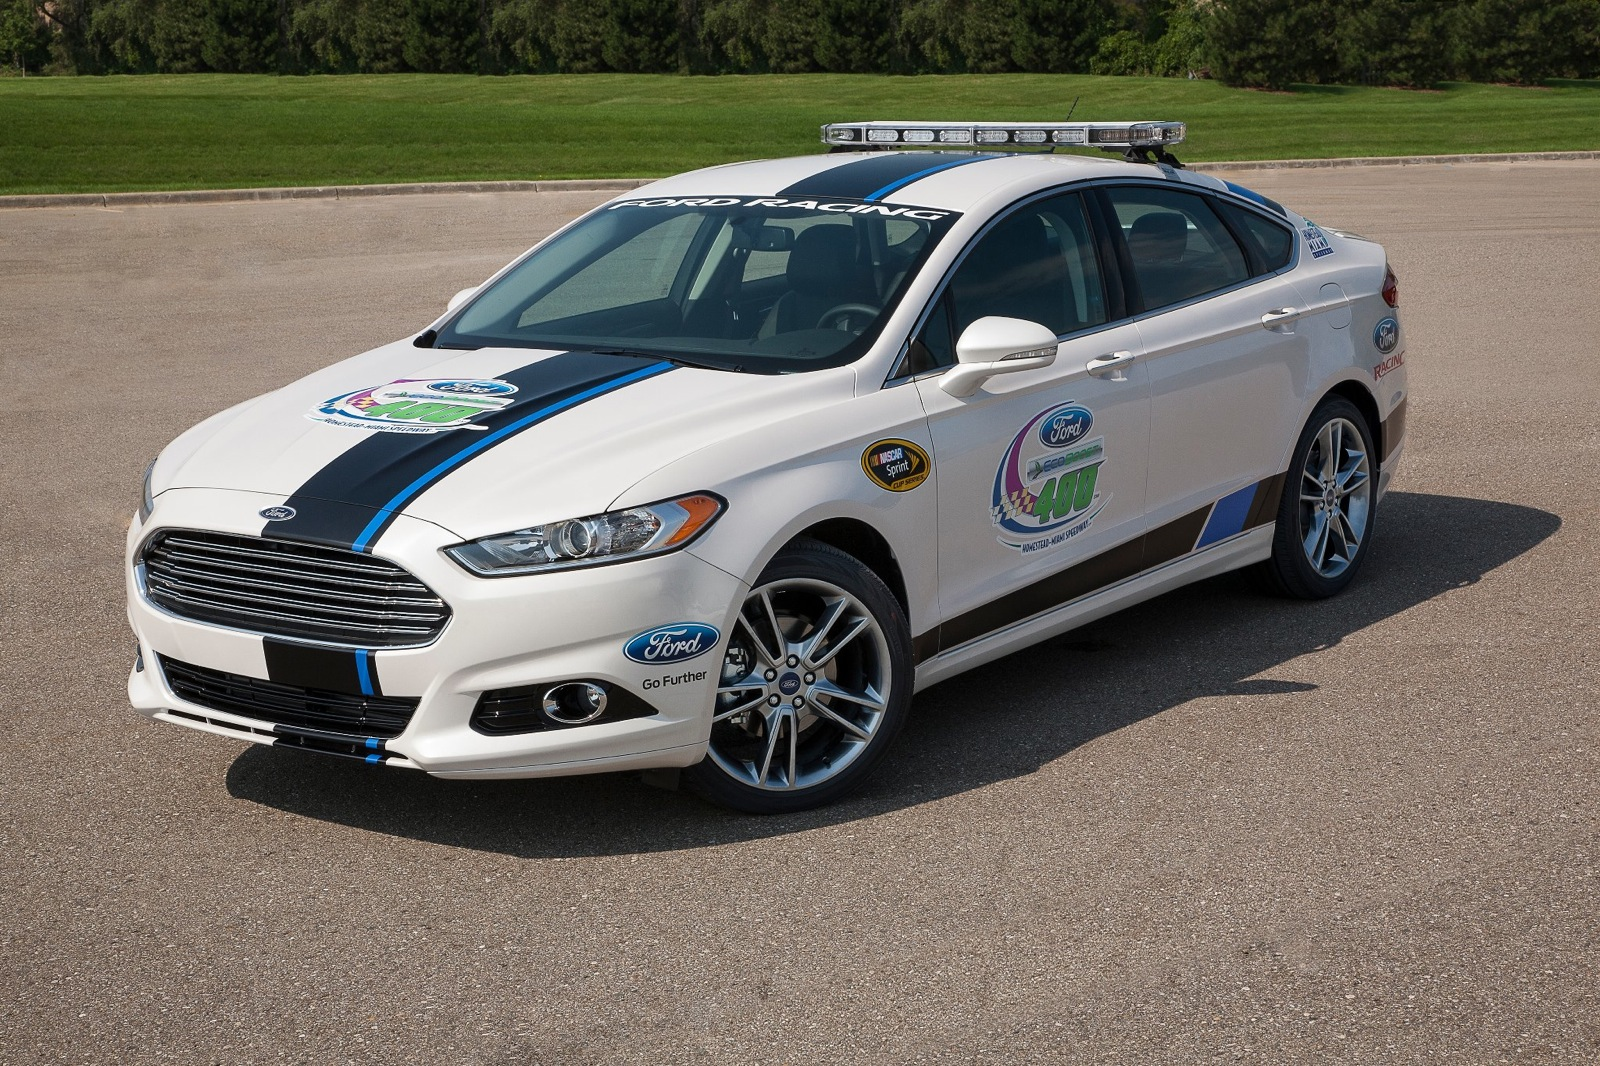 2013 ford fusion nascar sprint cup pace car going to lucky fan. Black Bedroom Furniture Sets. Home Design Ideas